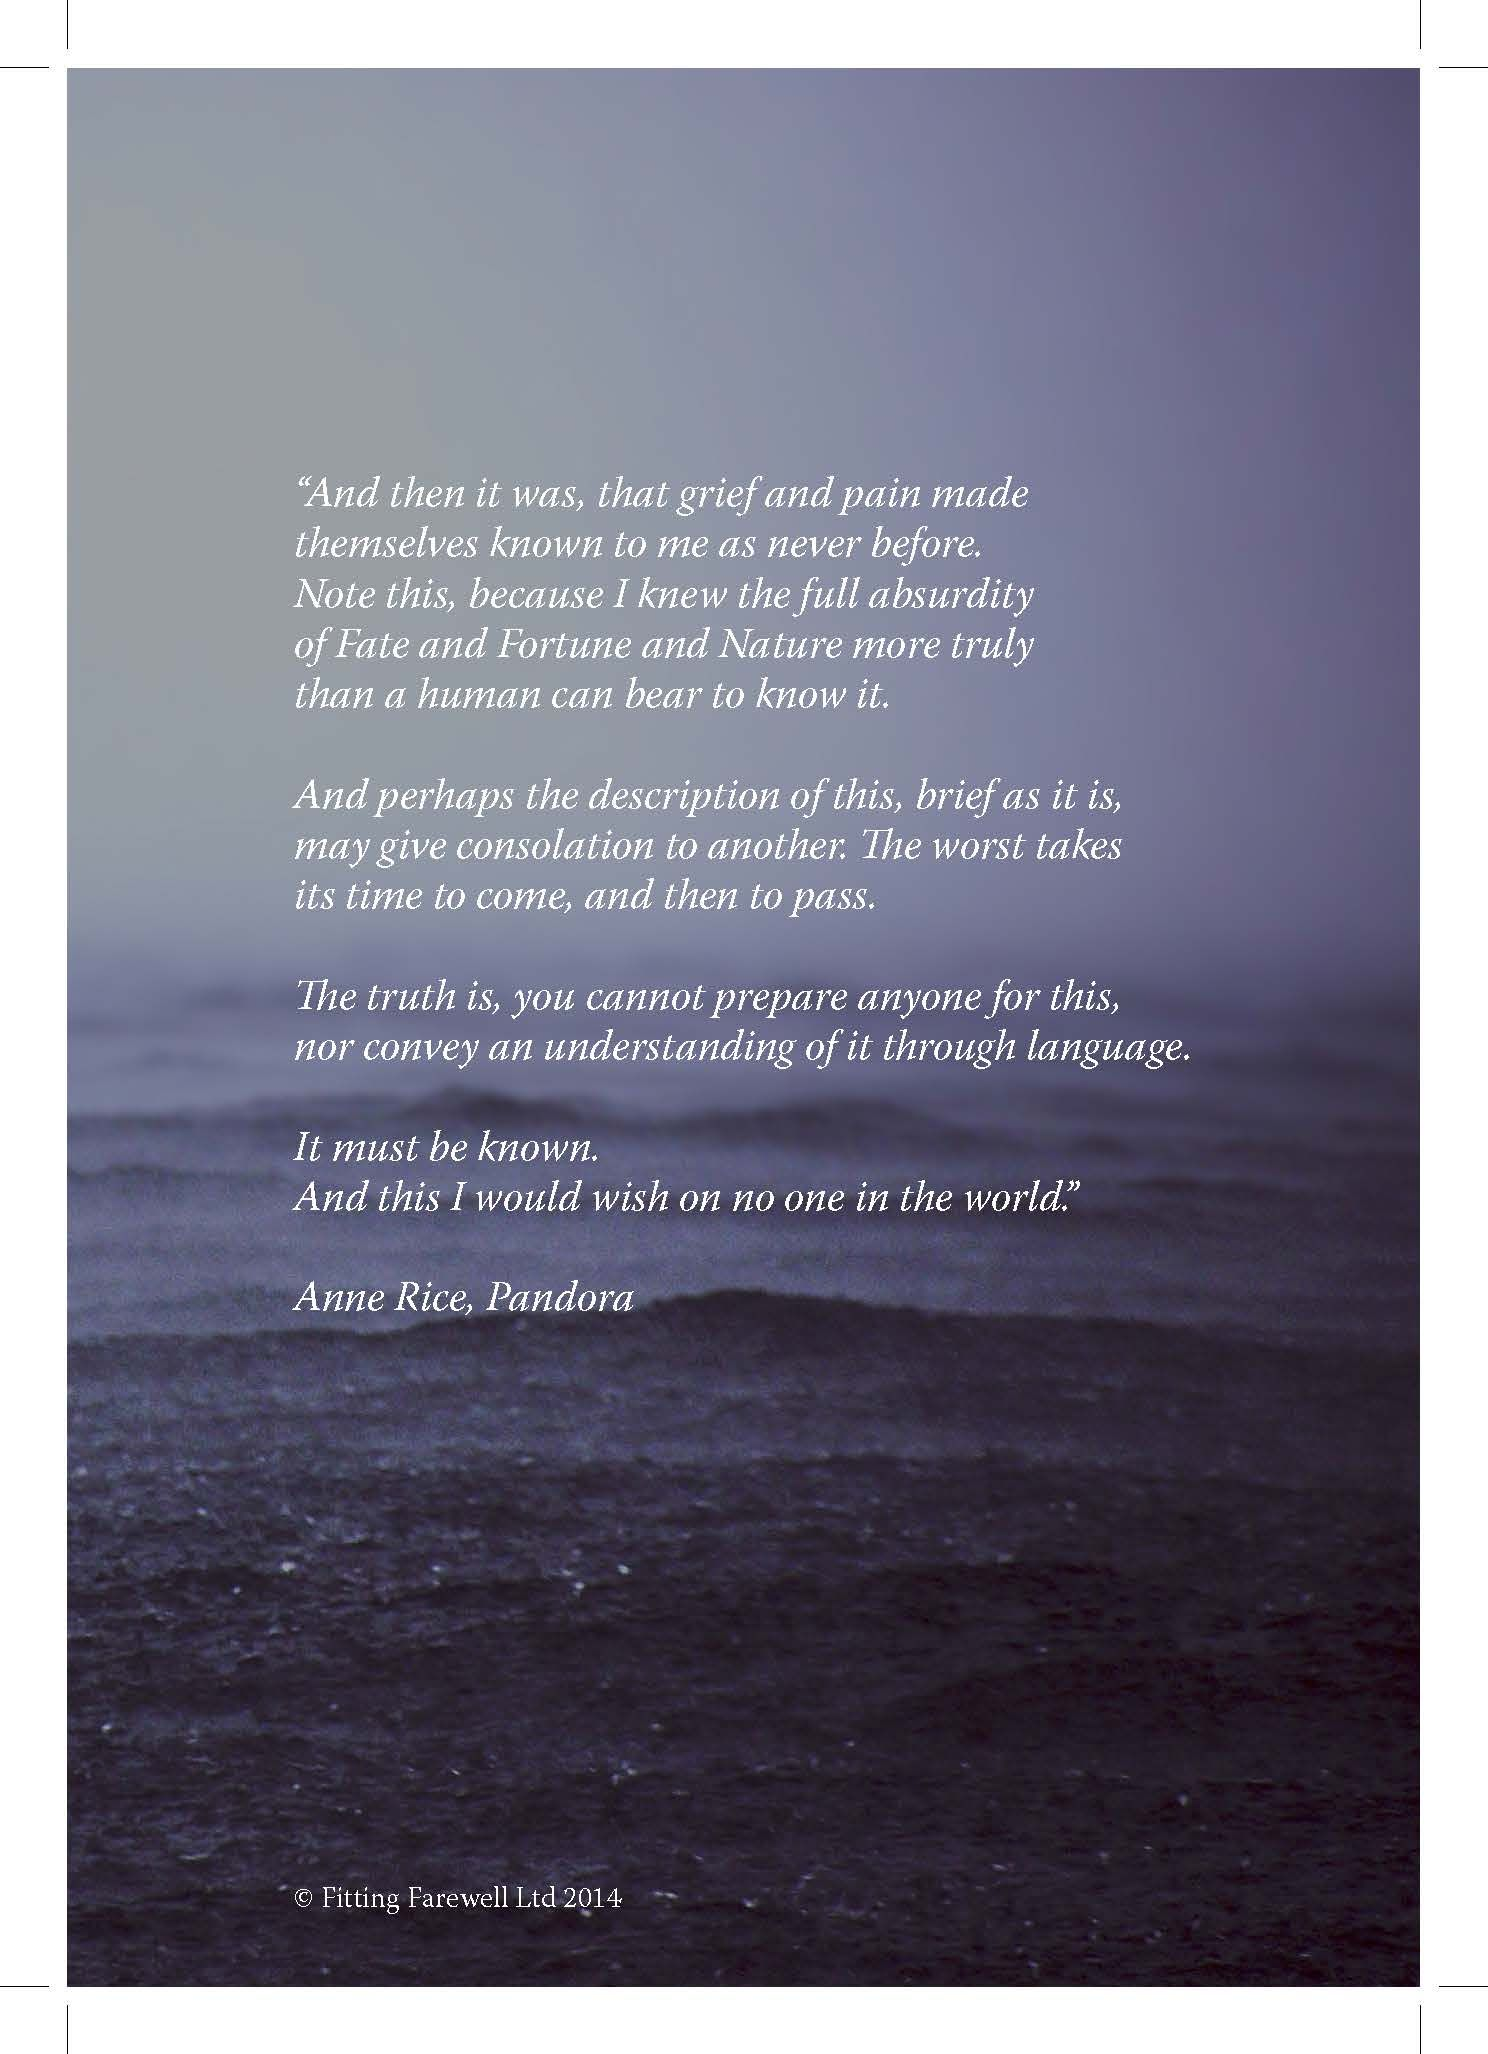 Quote about grief taken from Pandora by Anne Rice